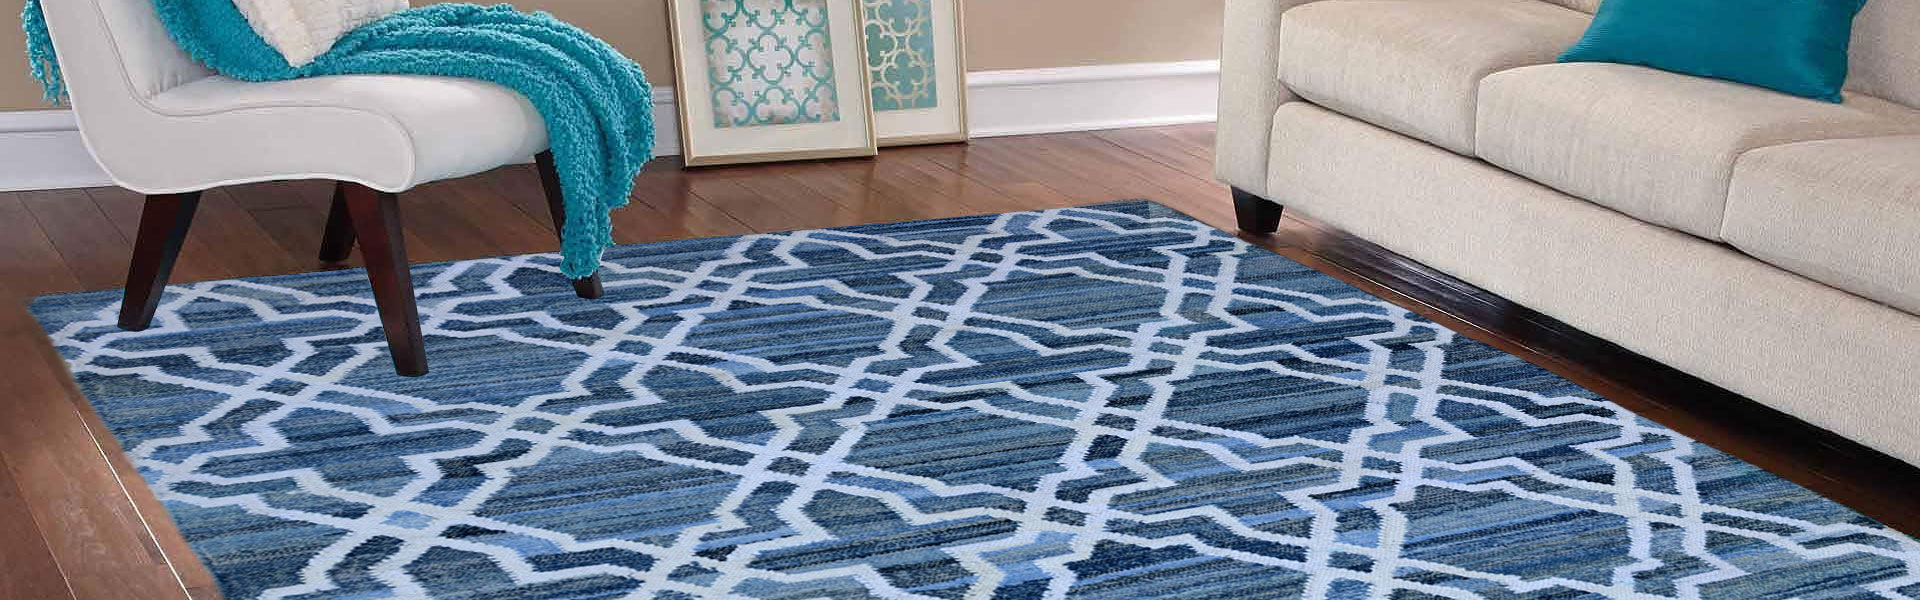 Yak Carpet Best Shop To Buy Carpet And Rugs Online India